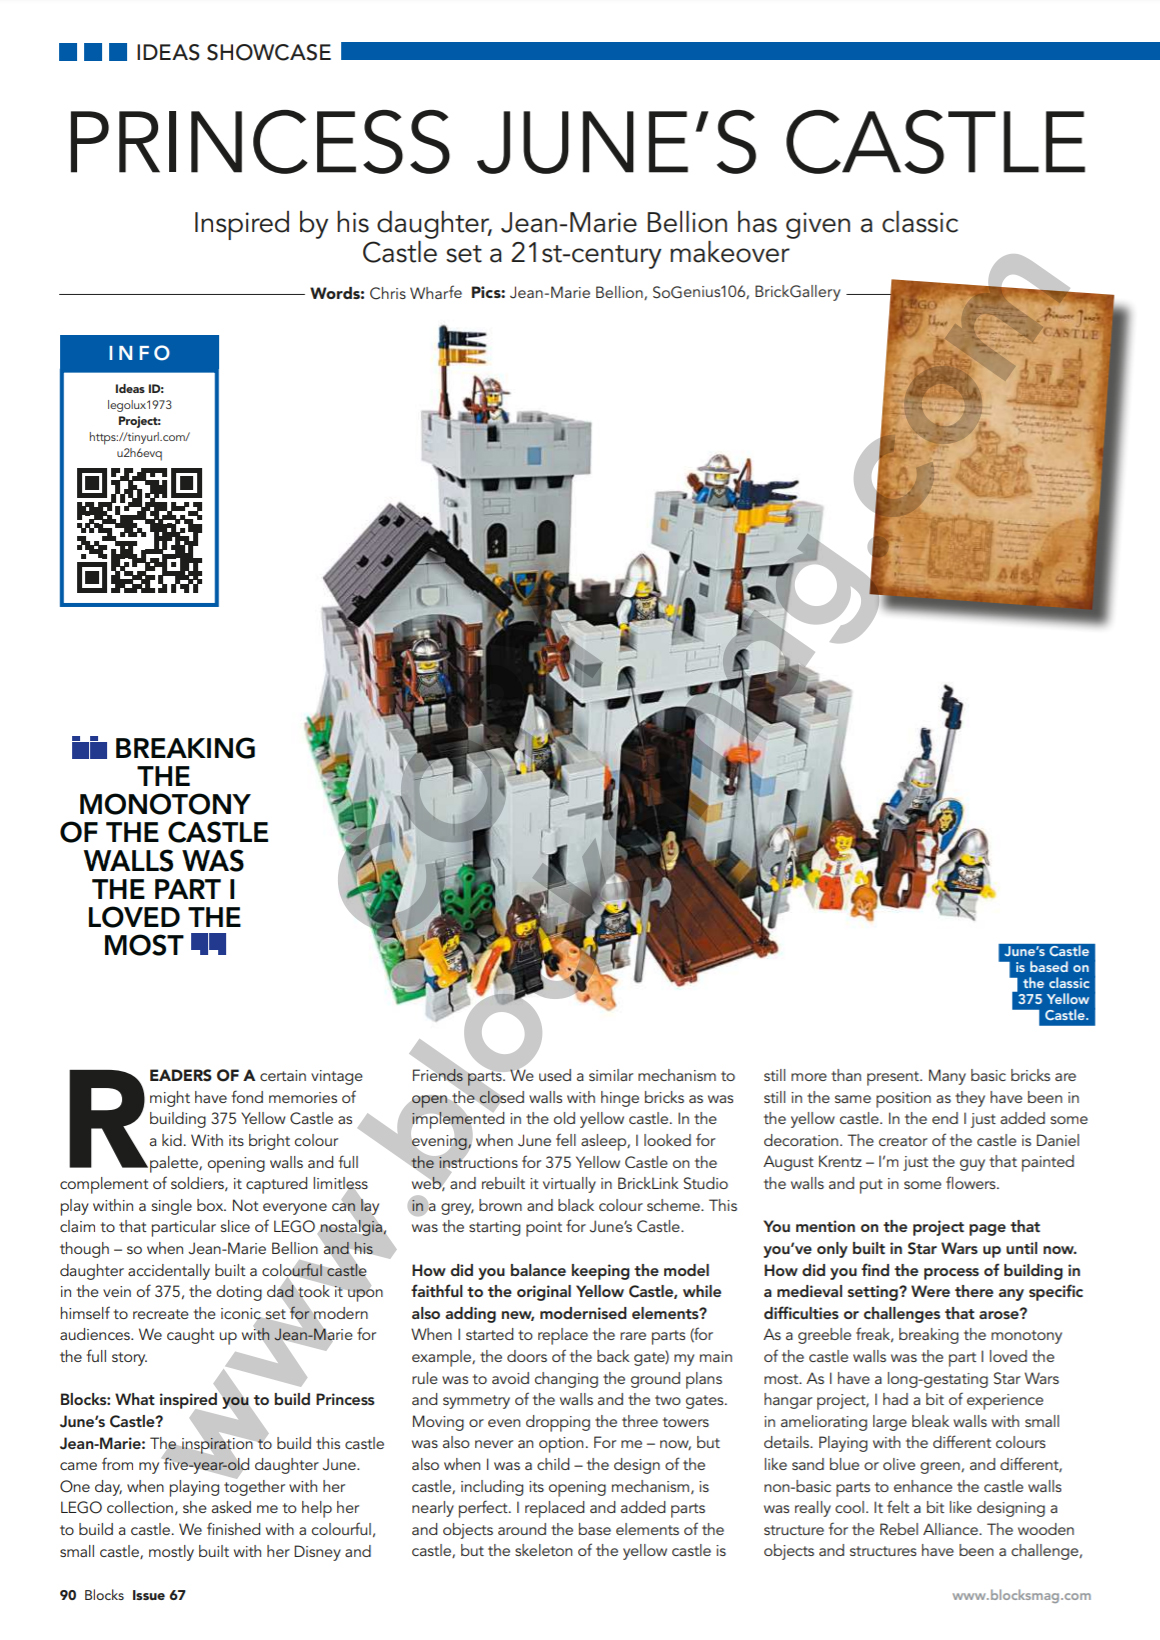 Princess June's Castle - my LEGO Ideas Project - Blocks magazine Issue 67 Showcase